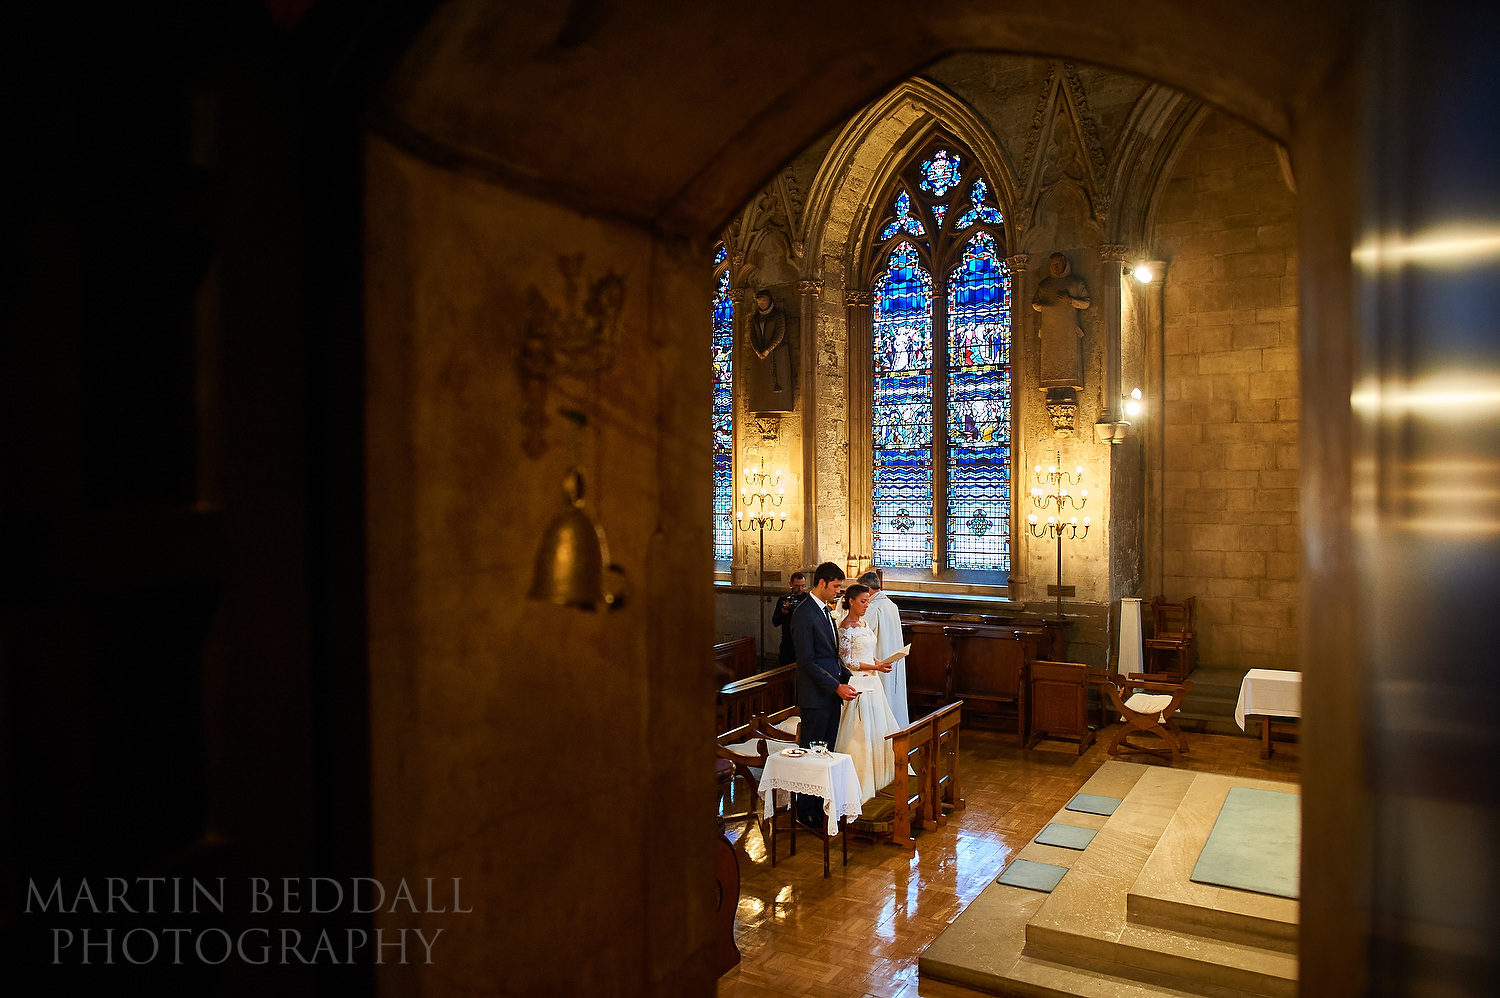 St Etheldreda's wedding ceremony in progress